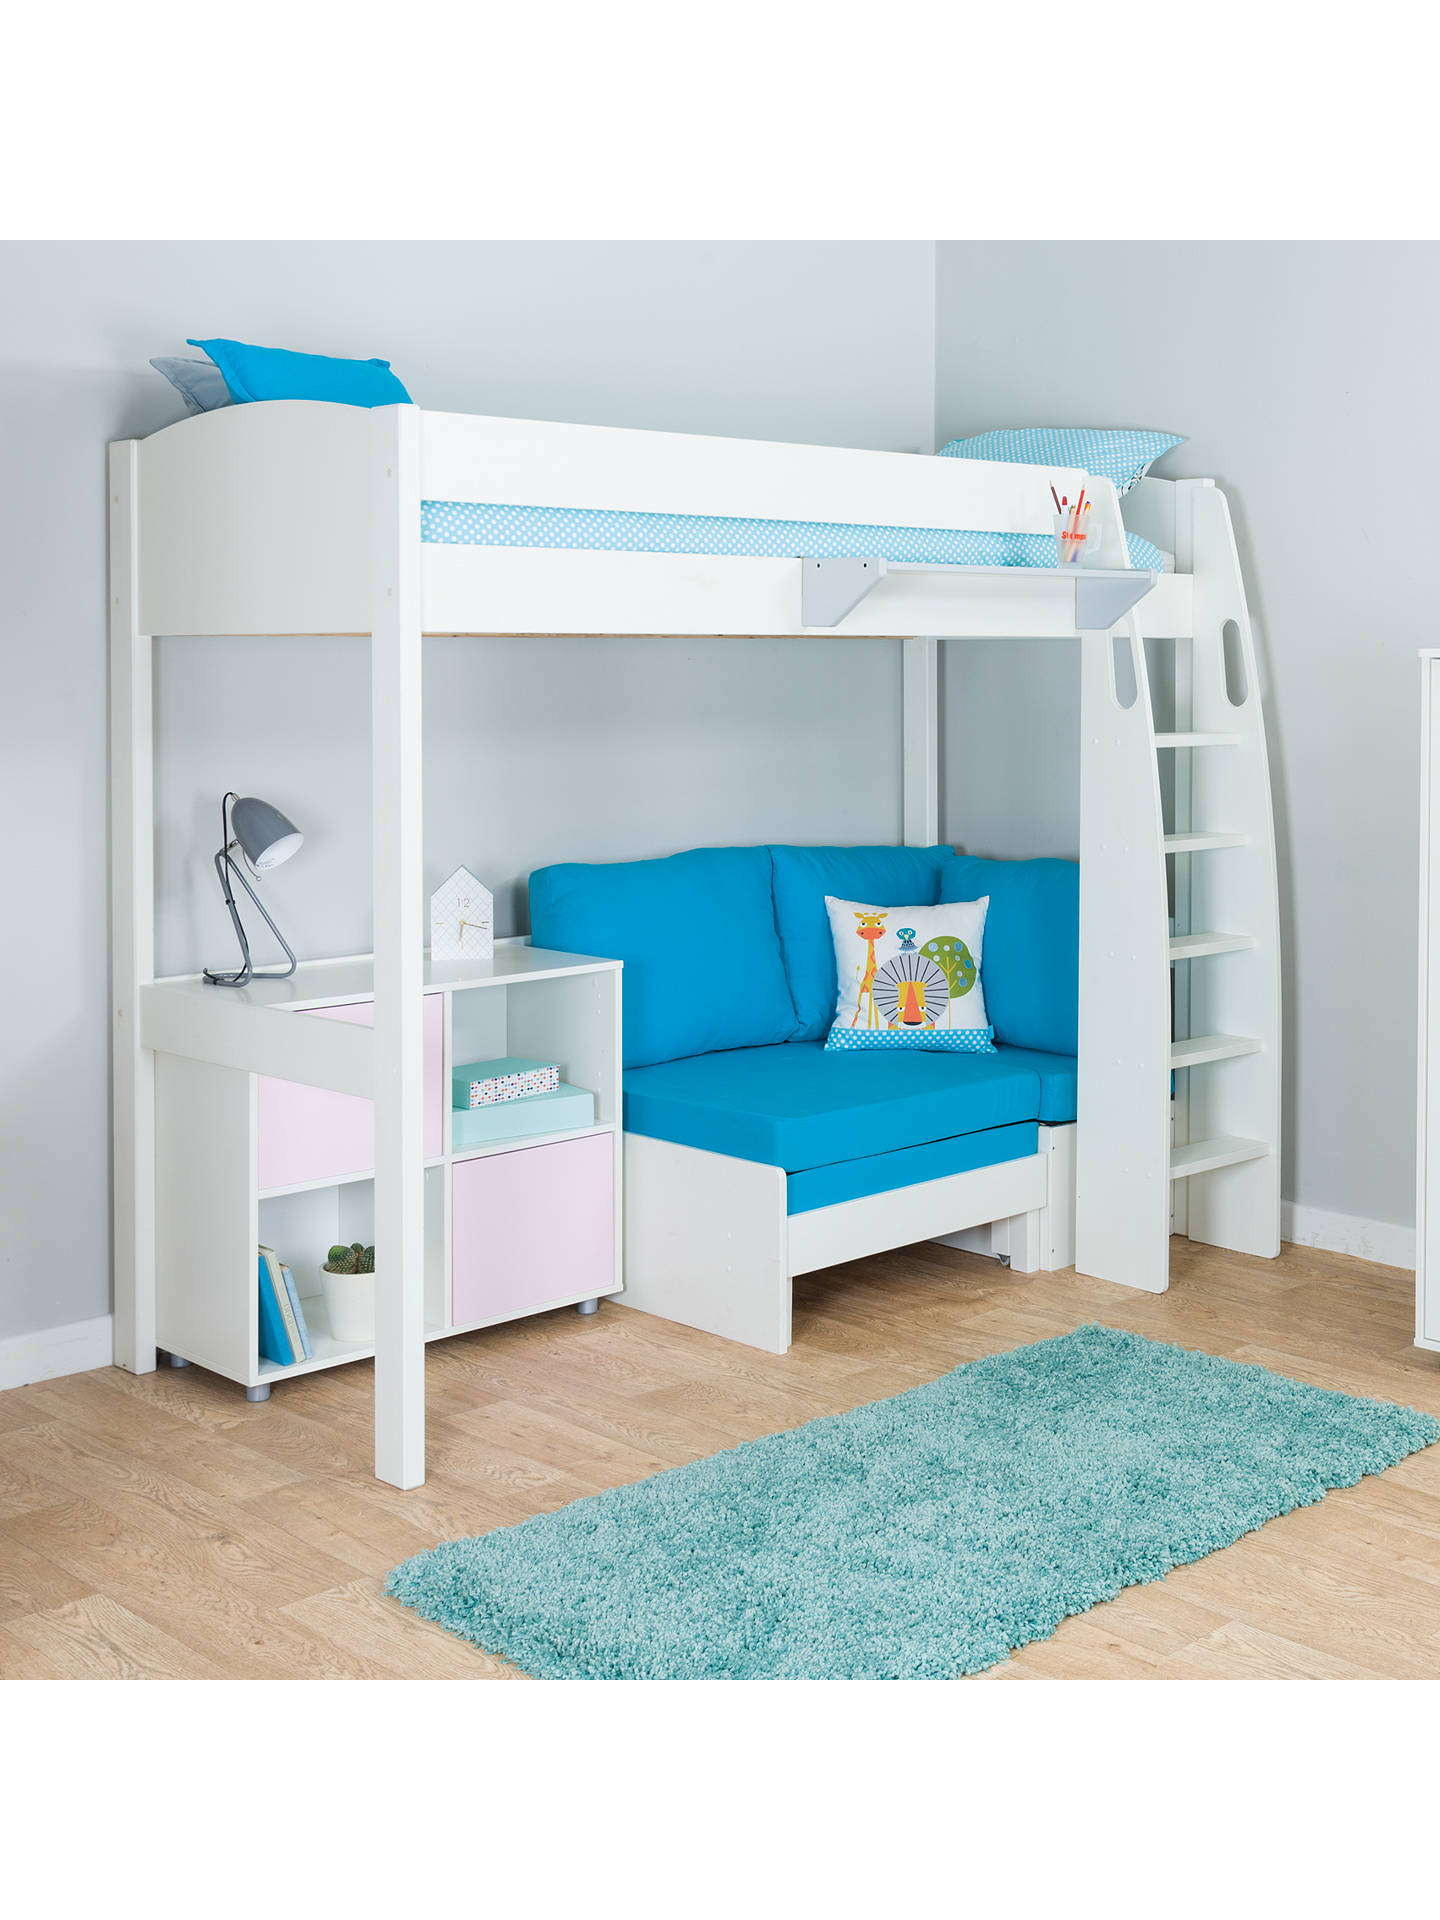 BuyStompa Uno S Plus High-Sleeper with White Headboard, Aqua Chair Bed and 2 Door Cube Unit, Aqua/Pink Online at johnlewis.com